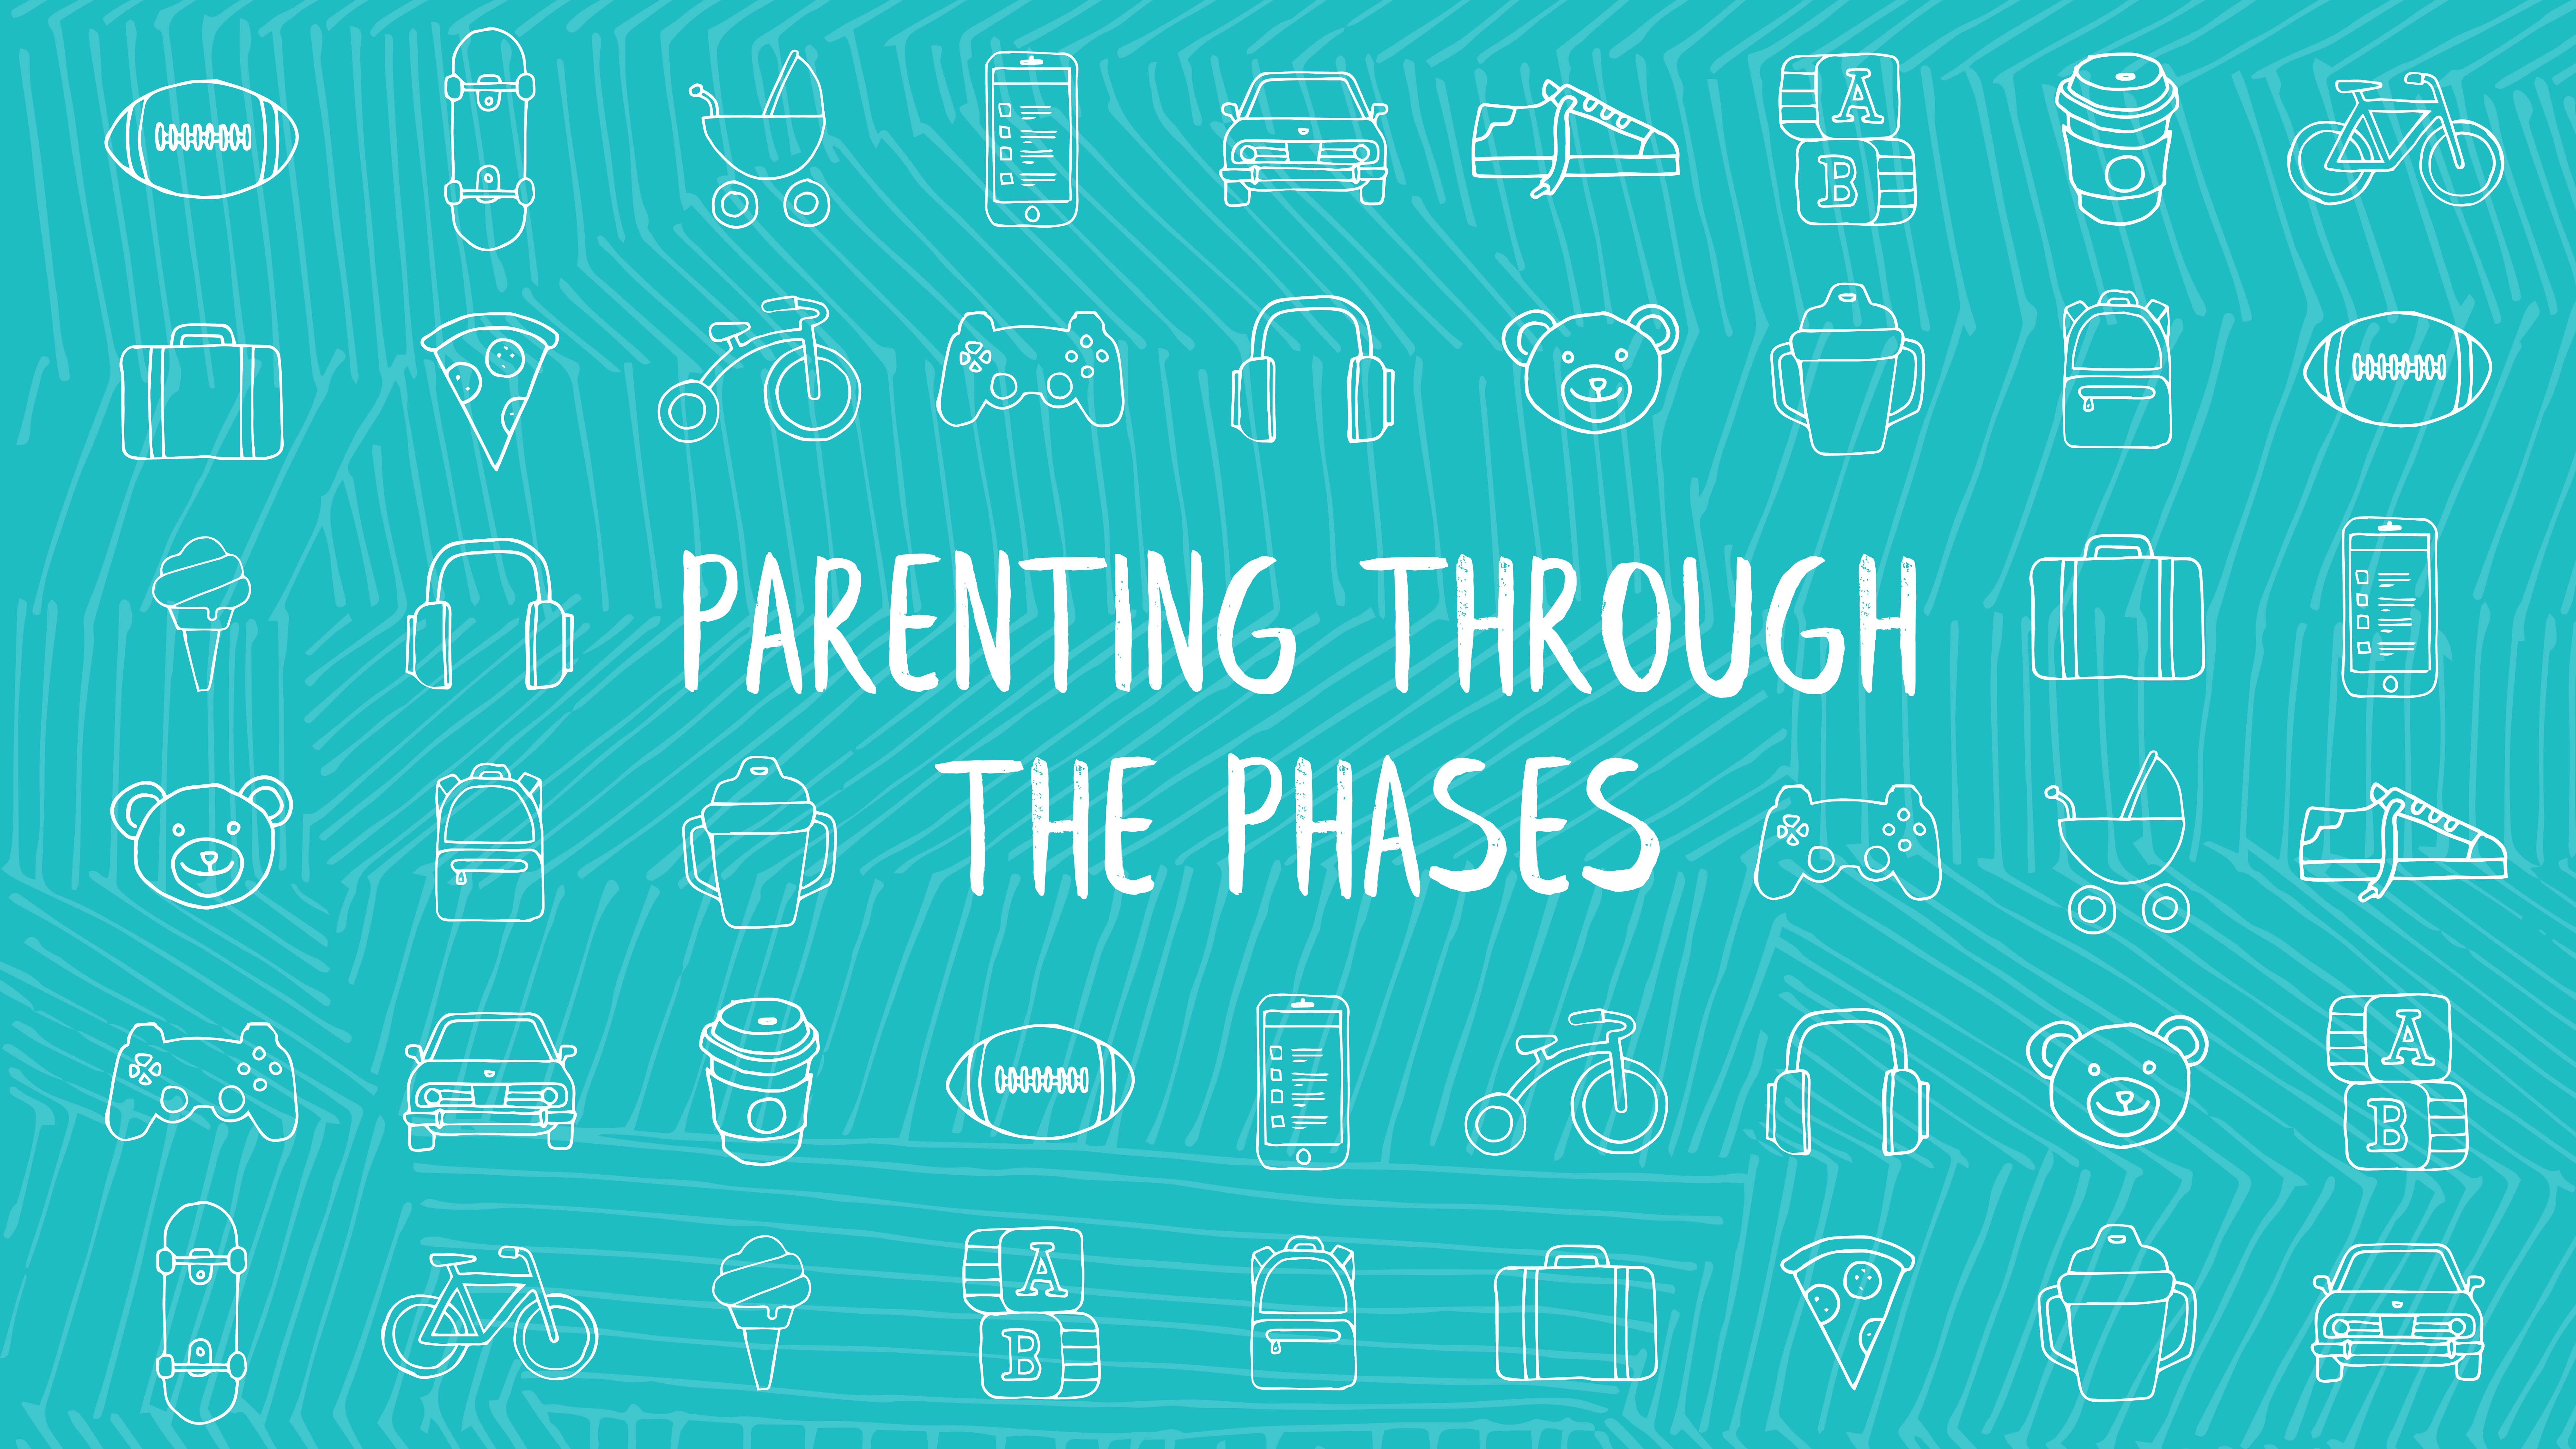 Parenting Through The Phases